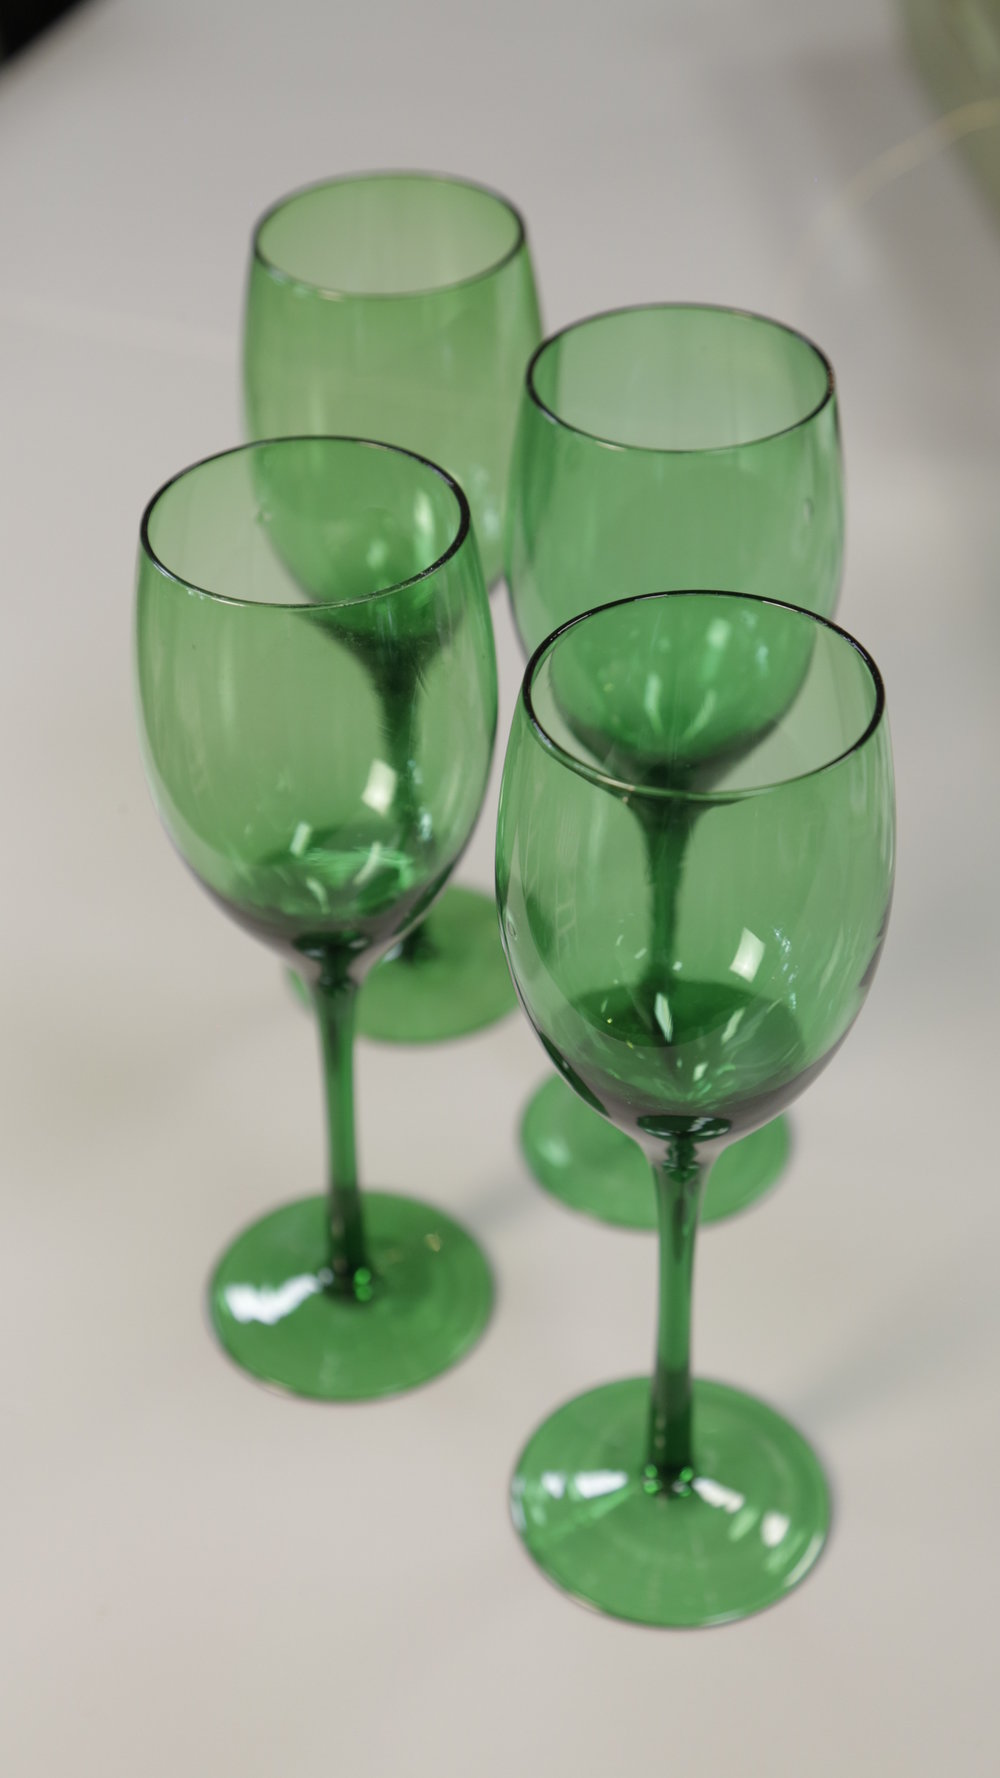 Green wine glasses